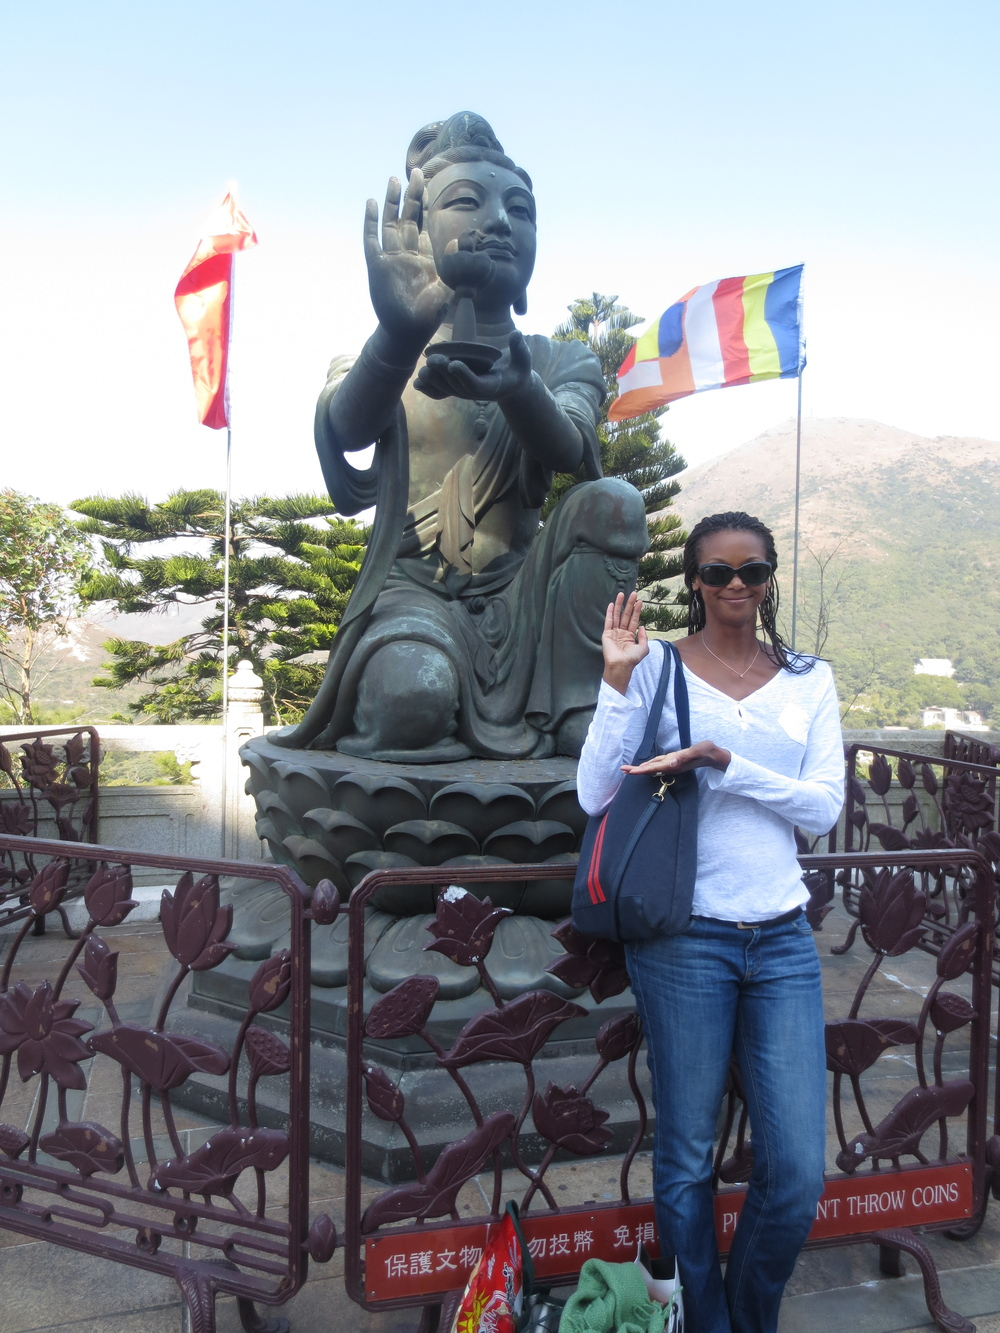 At the Big Buddha in Hong Kong.